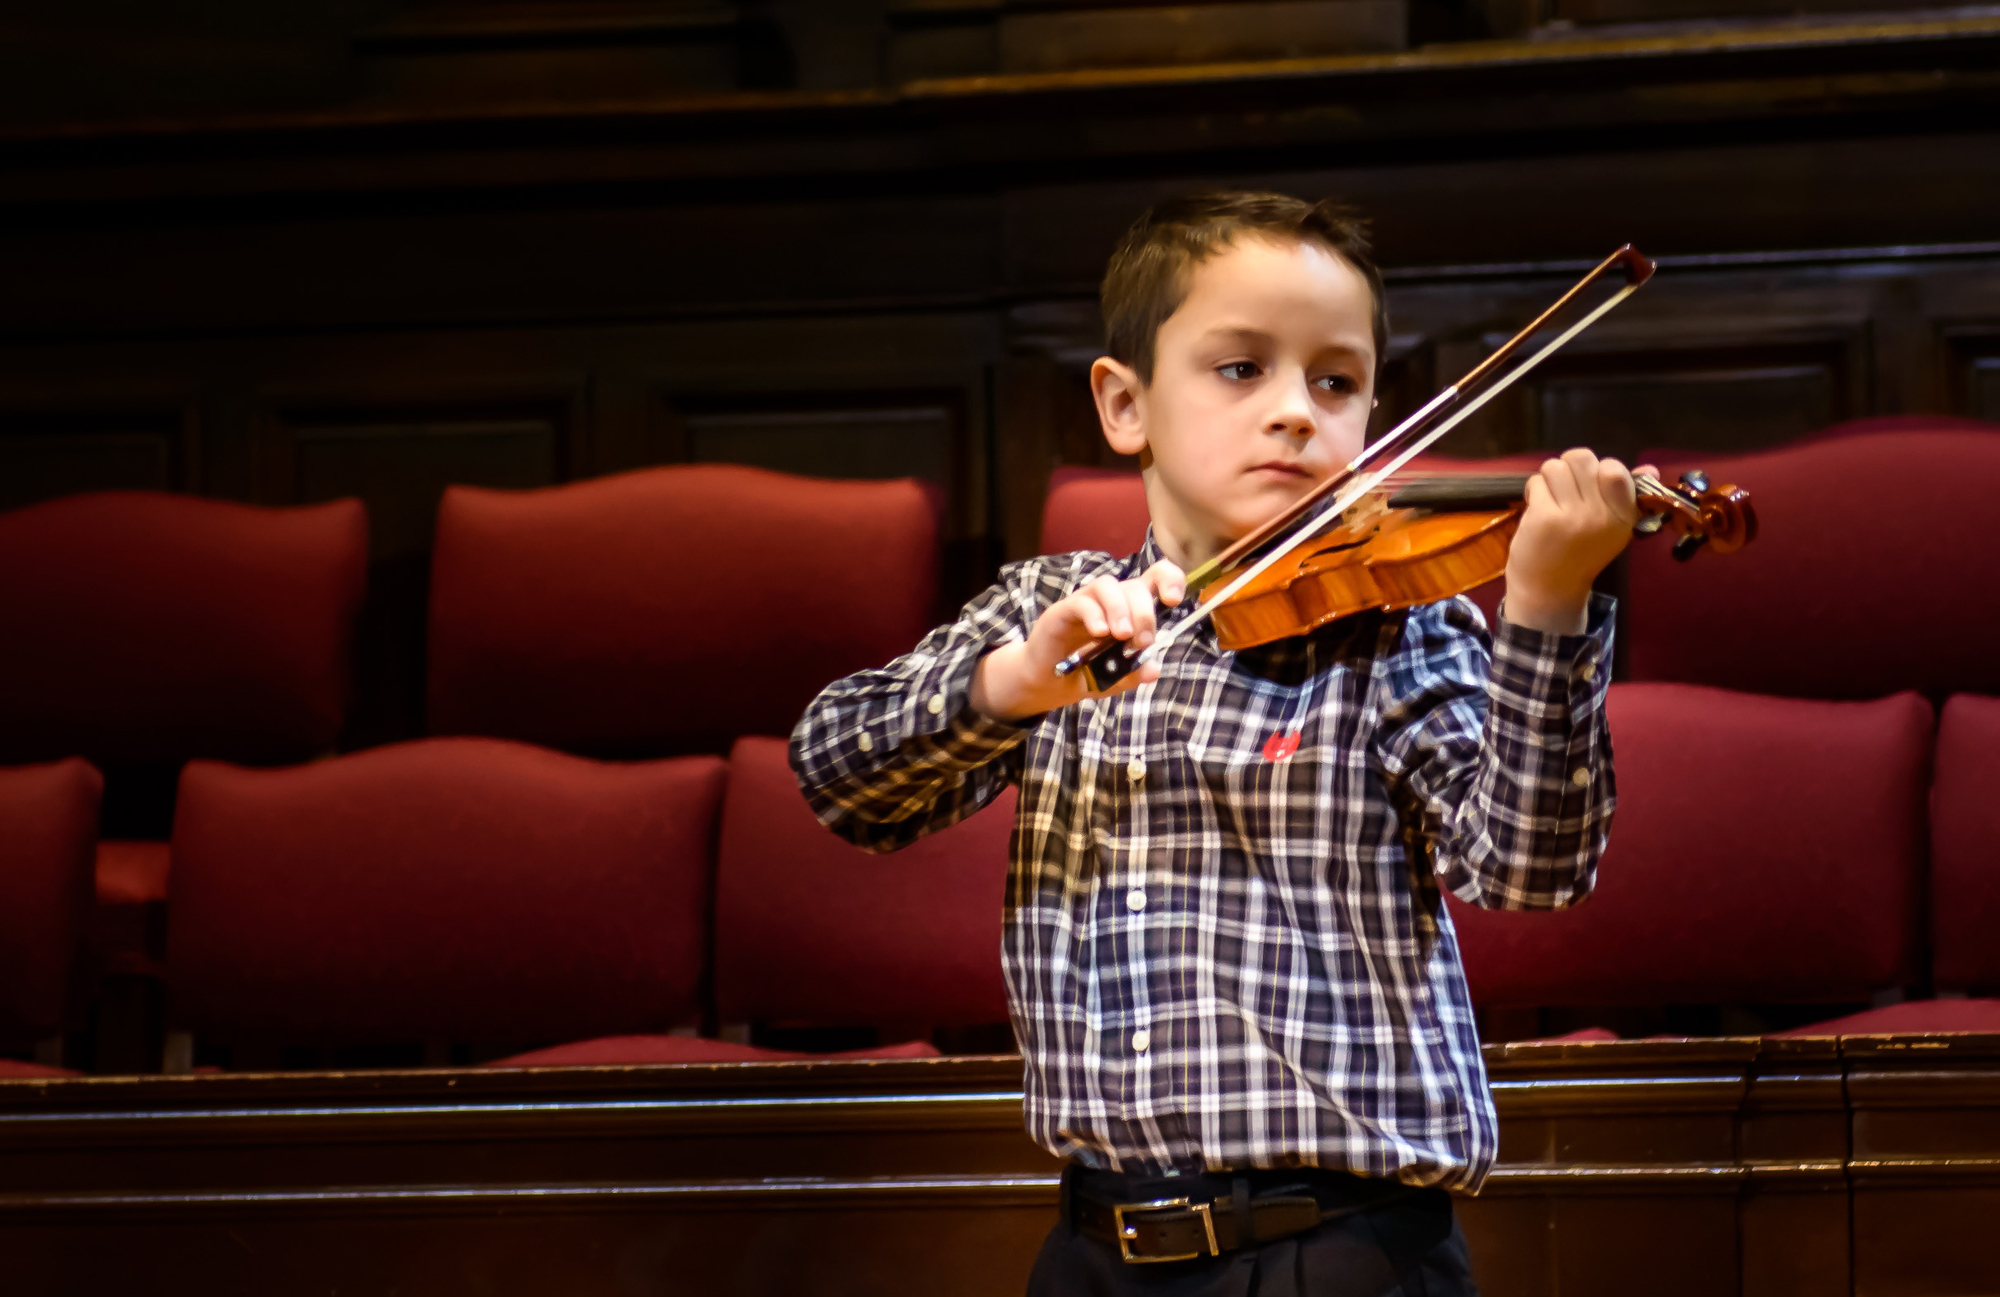 Image of young Academy of Strings student playing violin in individual Music Lesson